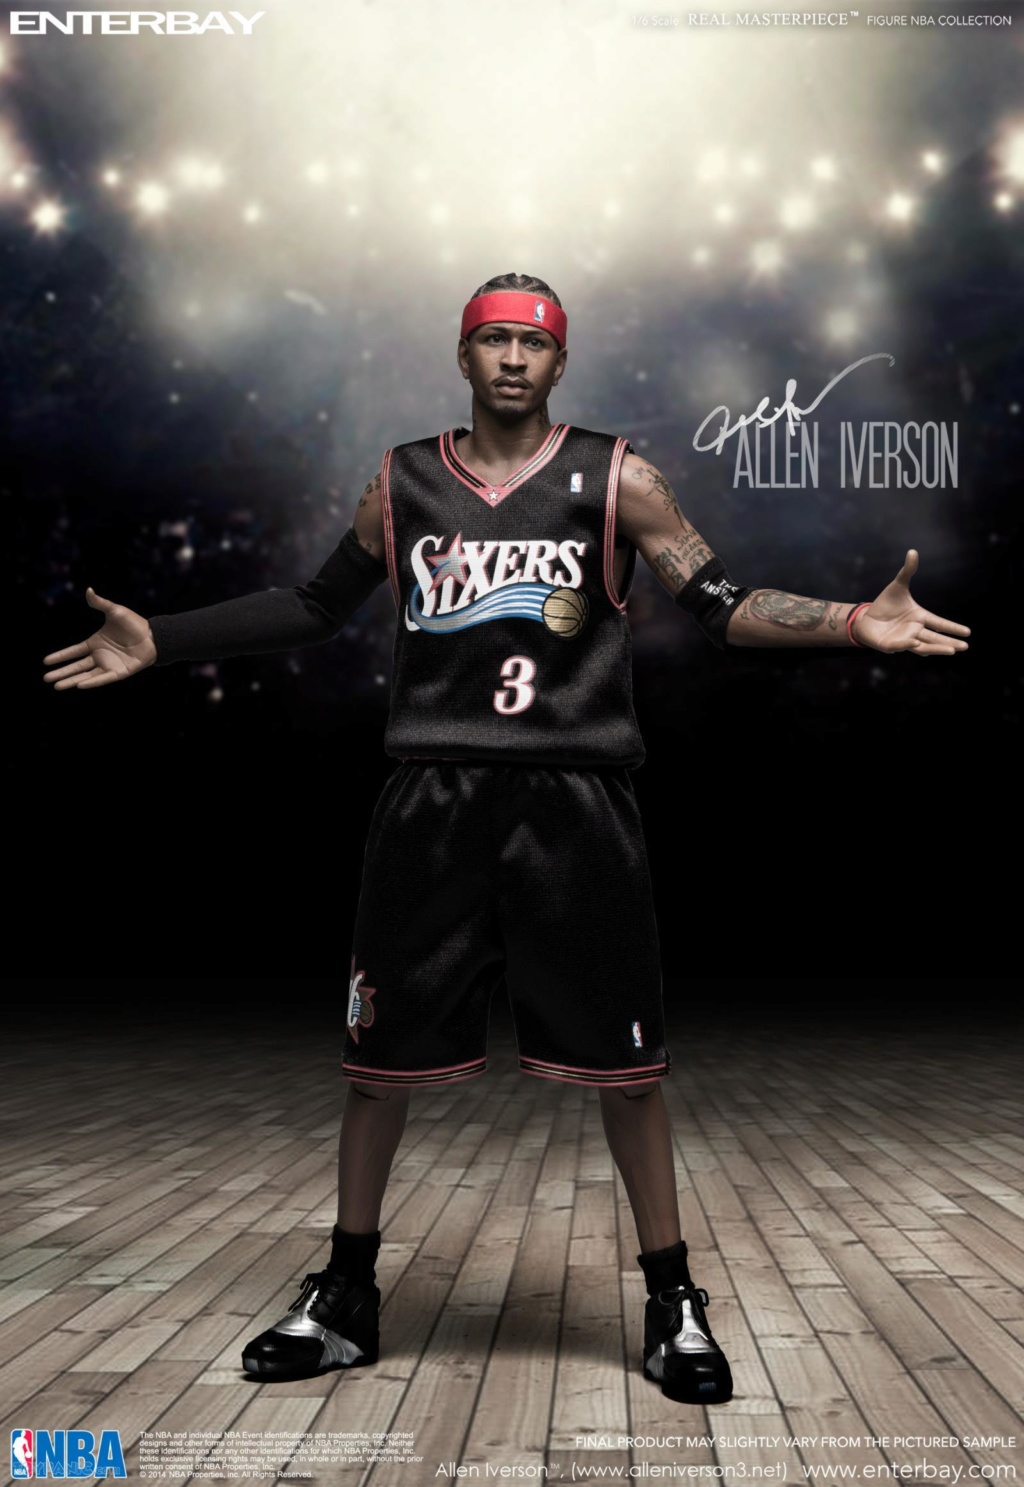 athlete - NEW PRODUCT: Enterbay: 1/6 Real Masterpiece NBA - Allen Iverson Action Figure (New Upgraded Re-edition) 52520224